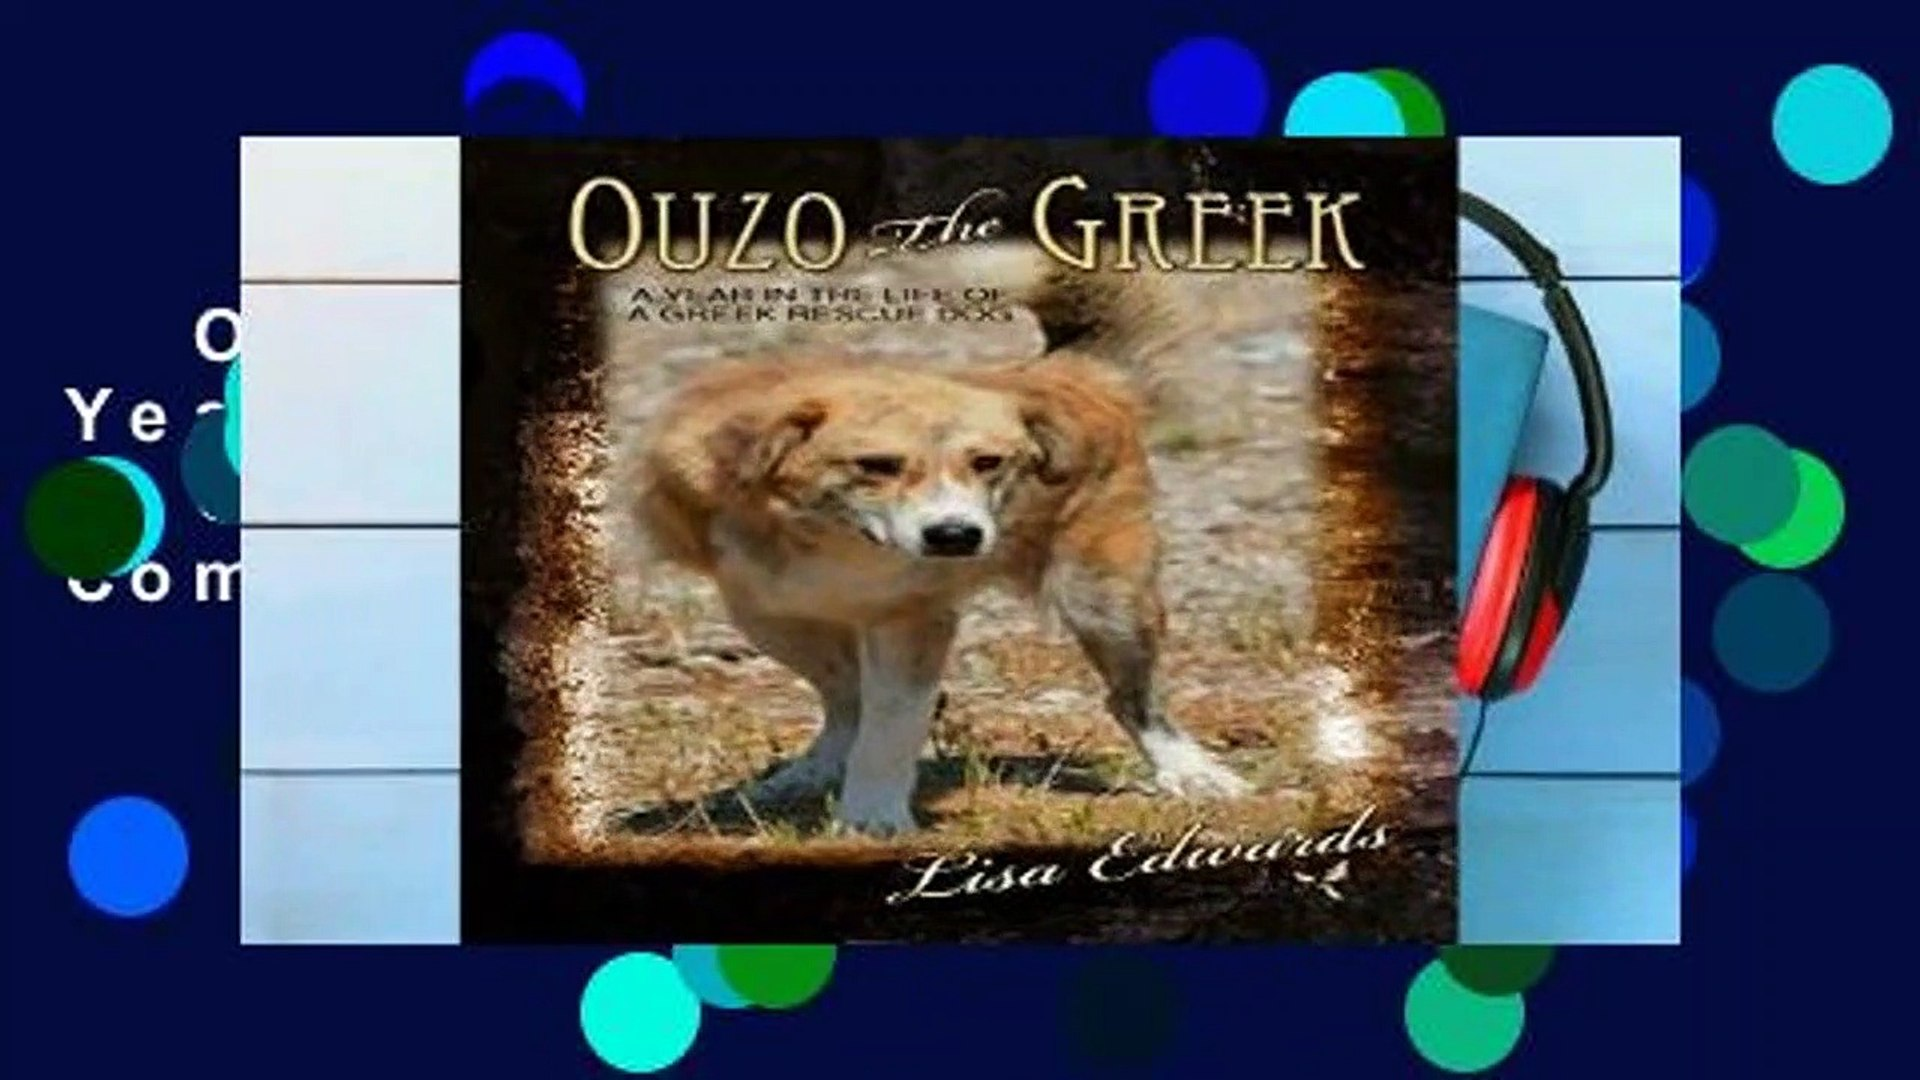 Ouzo the Greek: A Year in the Life of a Greek Rescue Dog Complete